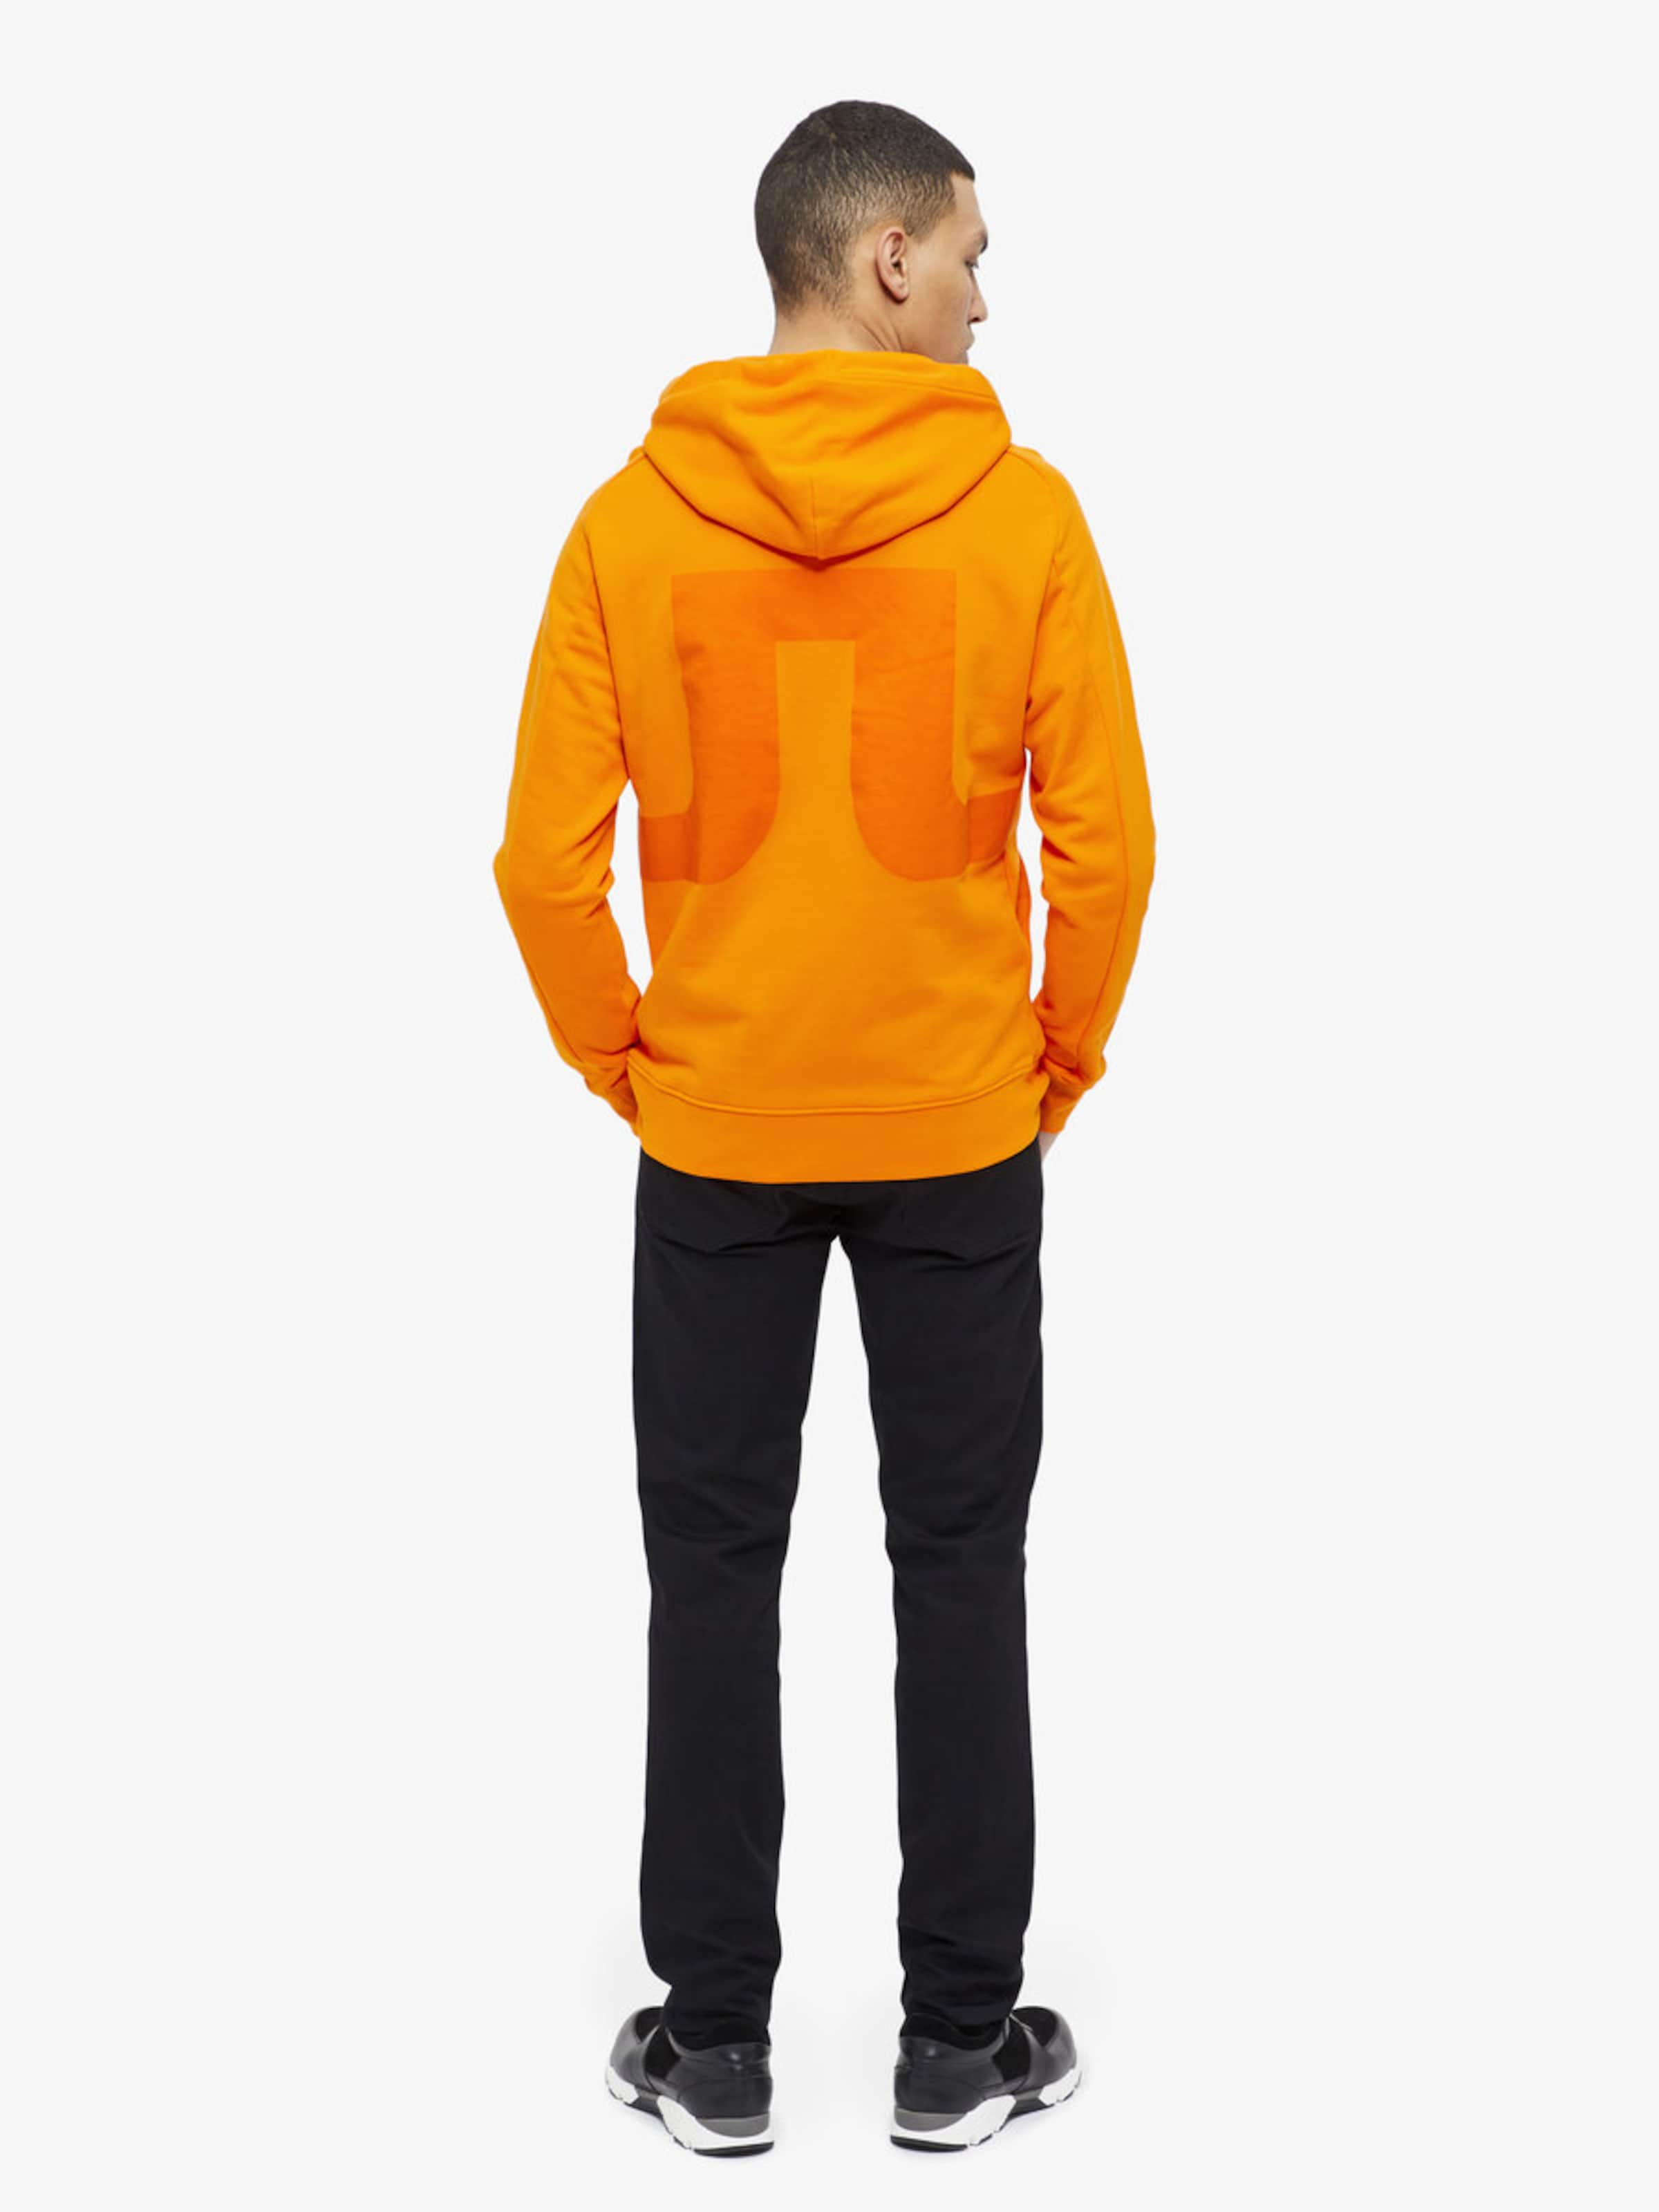 J.Lindeberg 'Throw Ring Loop' Hoodie Rabatt Shop-Angebot pzoT1JBD